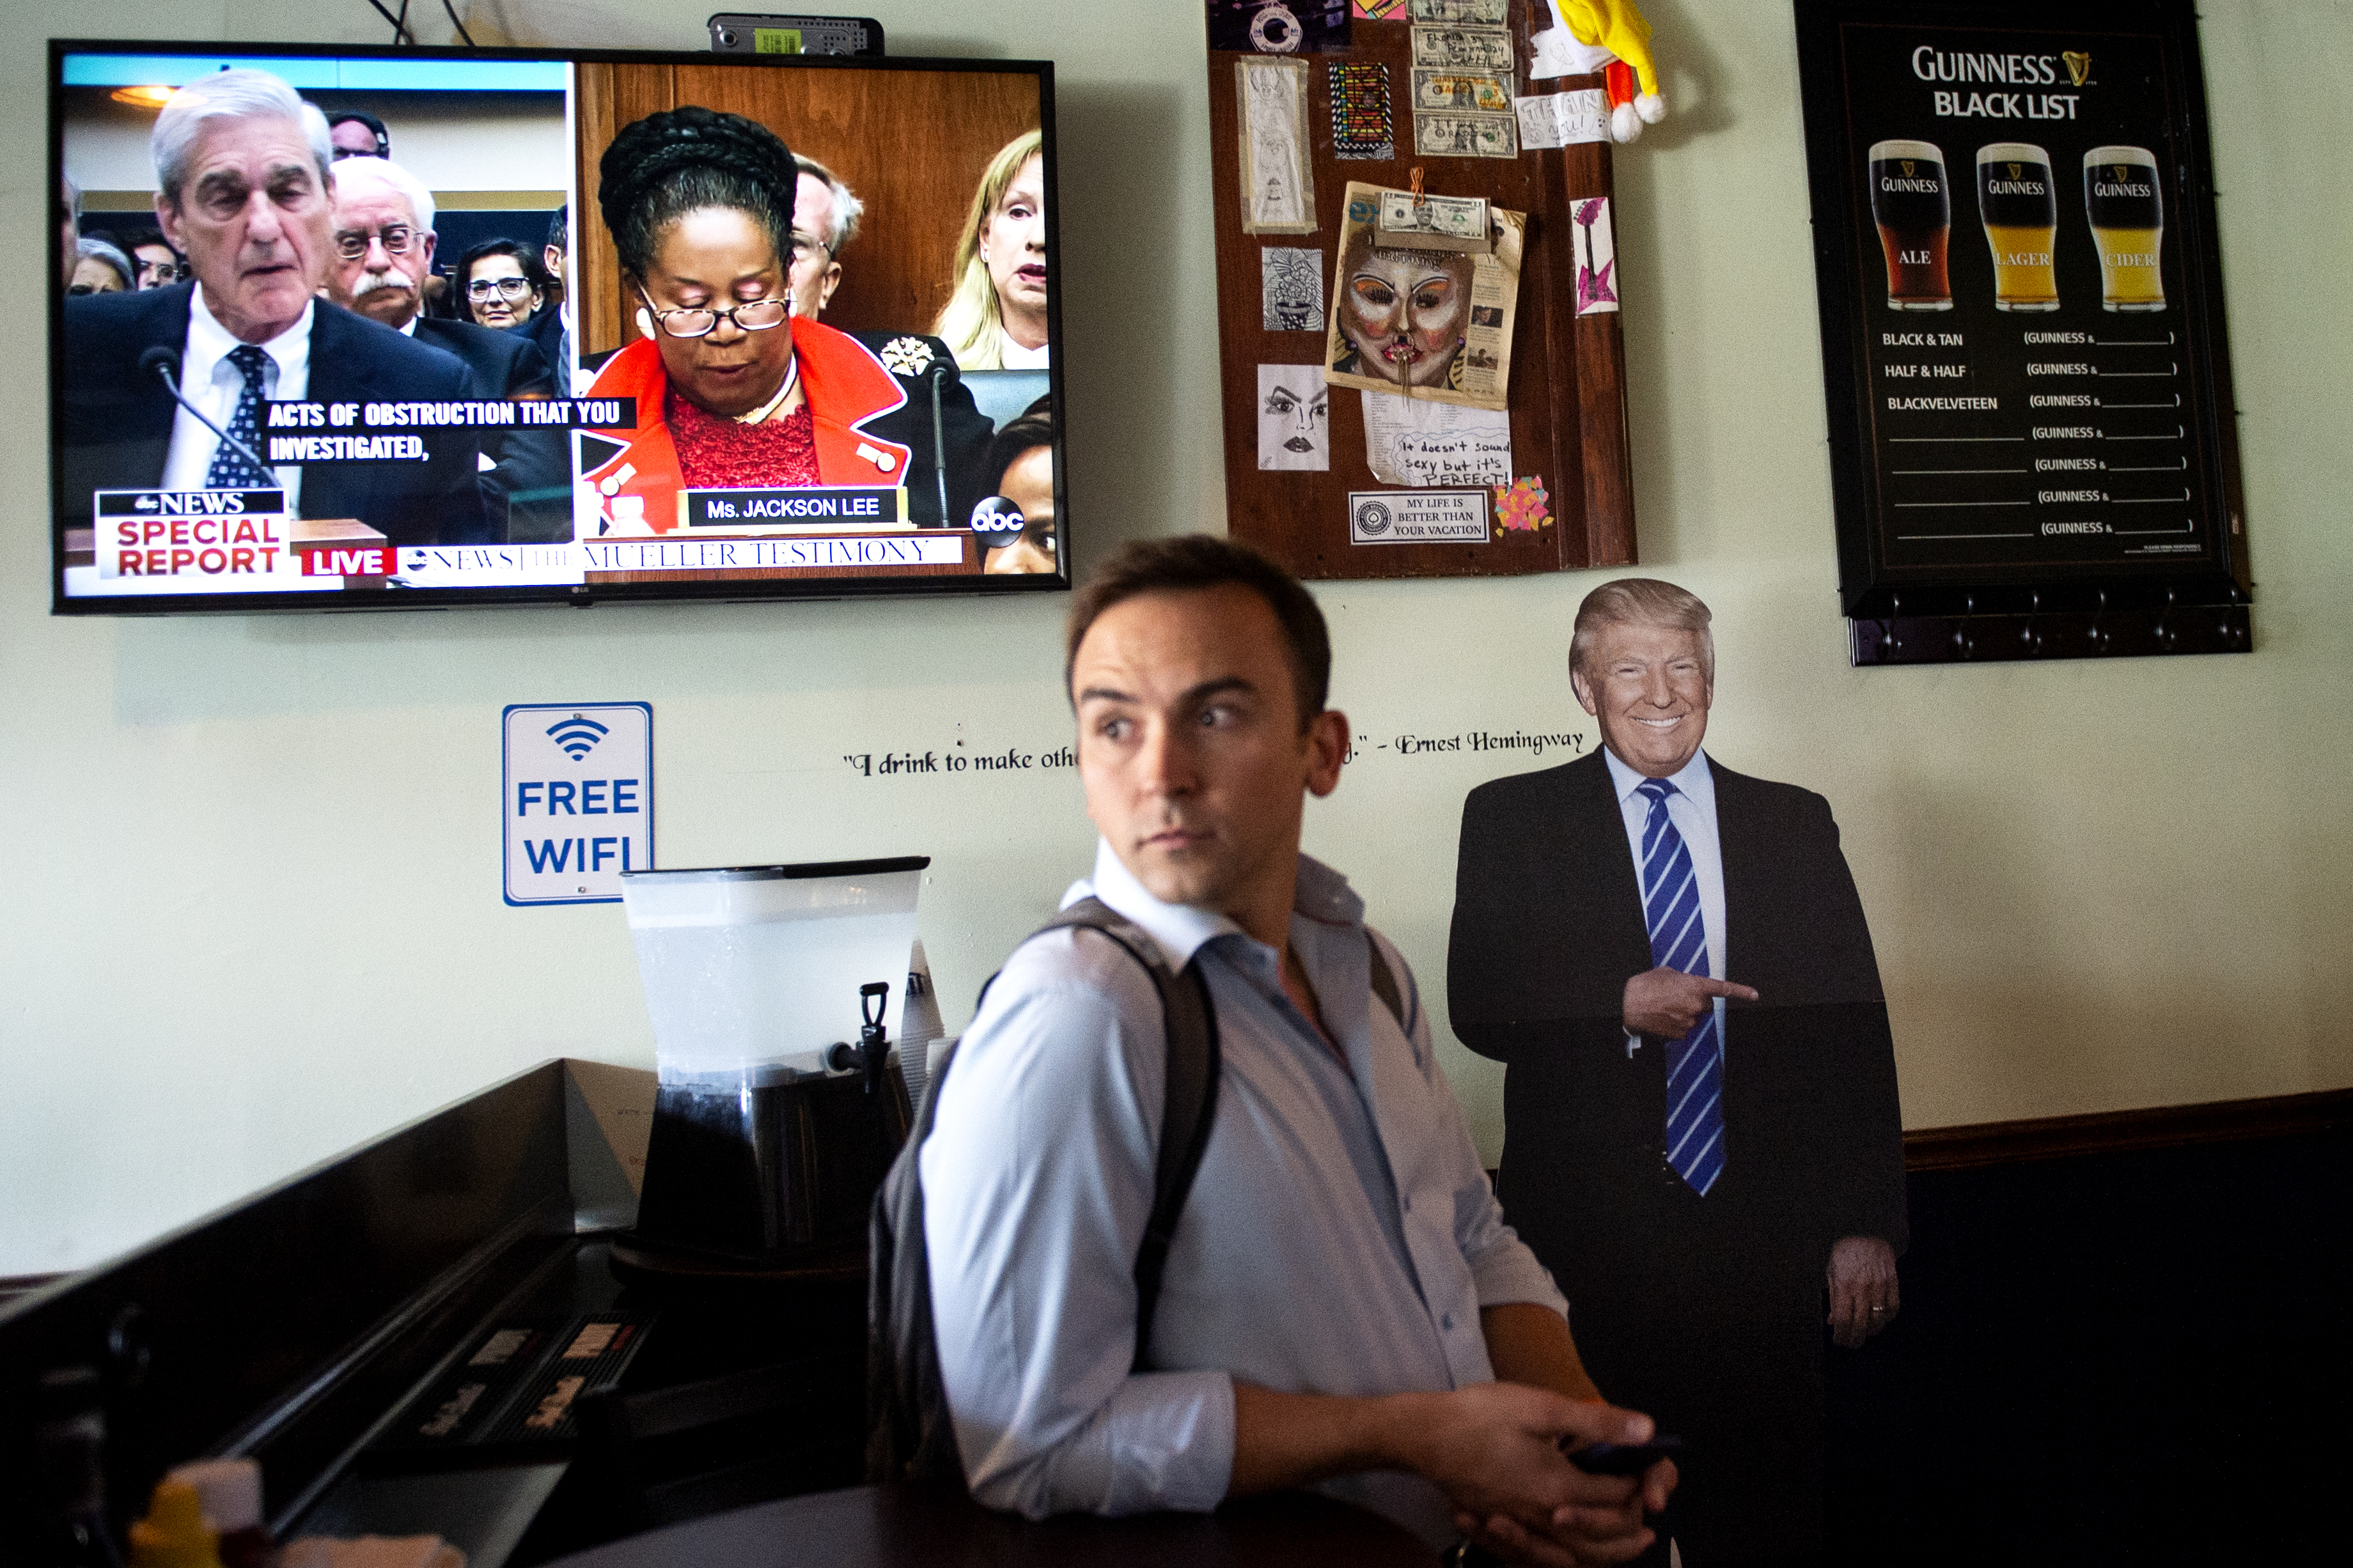 UNITED STATES - JULY 24: A man watches former special counsel Robert Mueller testify before the House Judiciary Committee as it is shown at Duffy's Irish Pub in Washington on Wednesday July 24, 2019. (Photo by Caroline Brehman/CQ Roll Call)